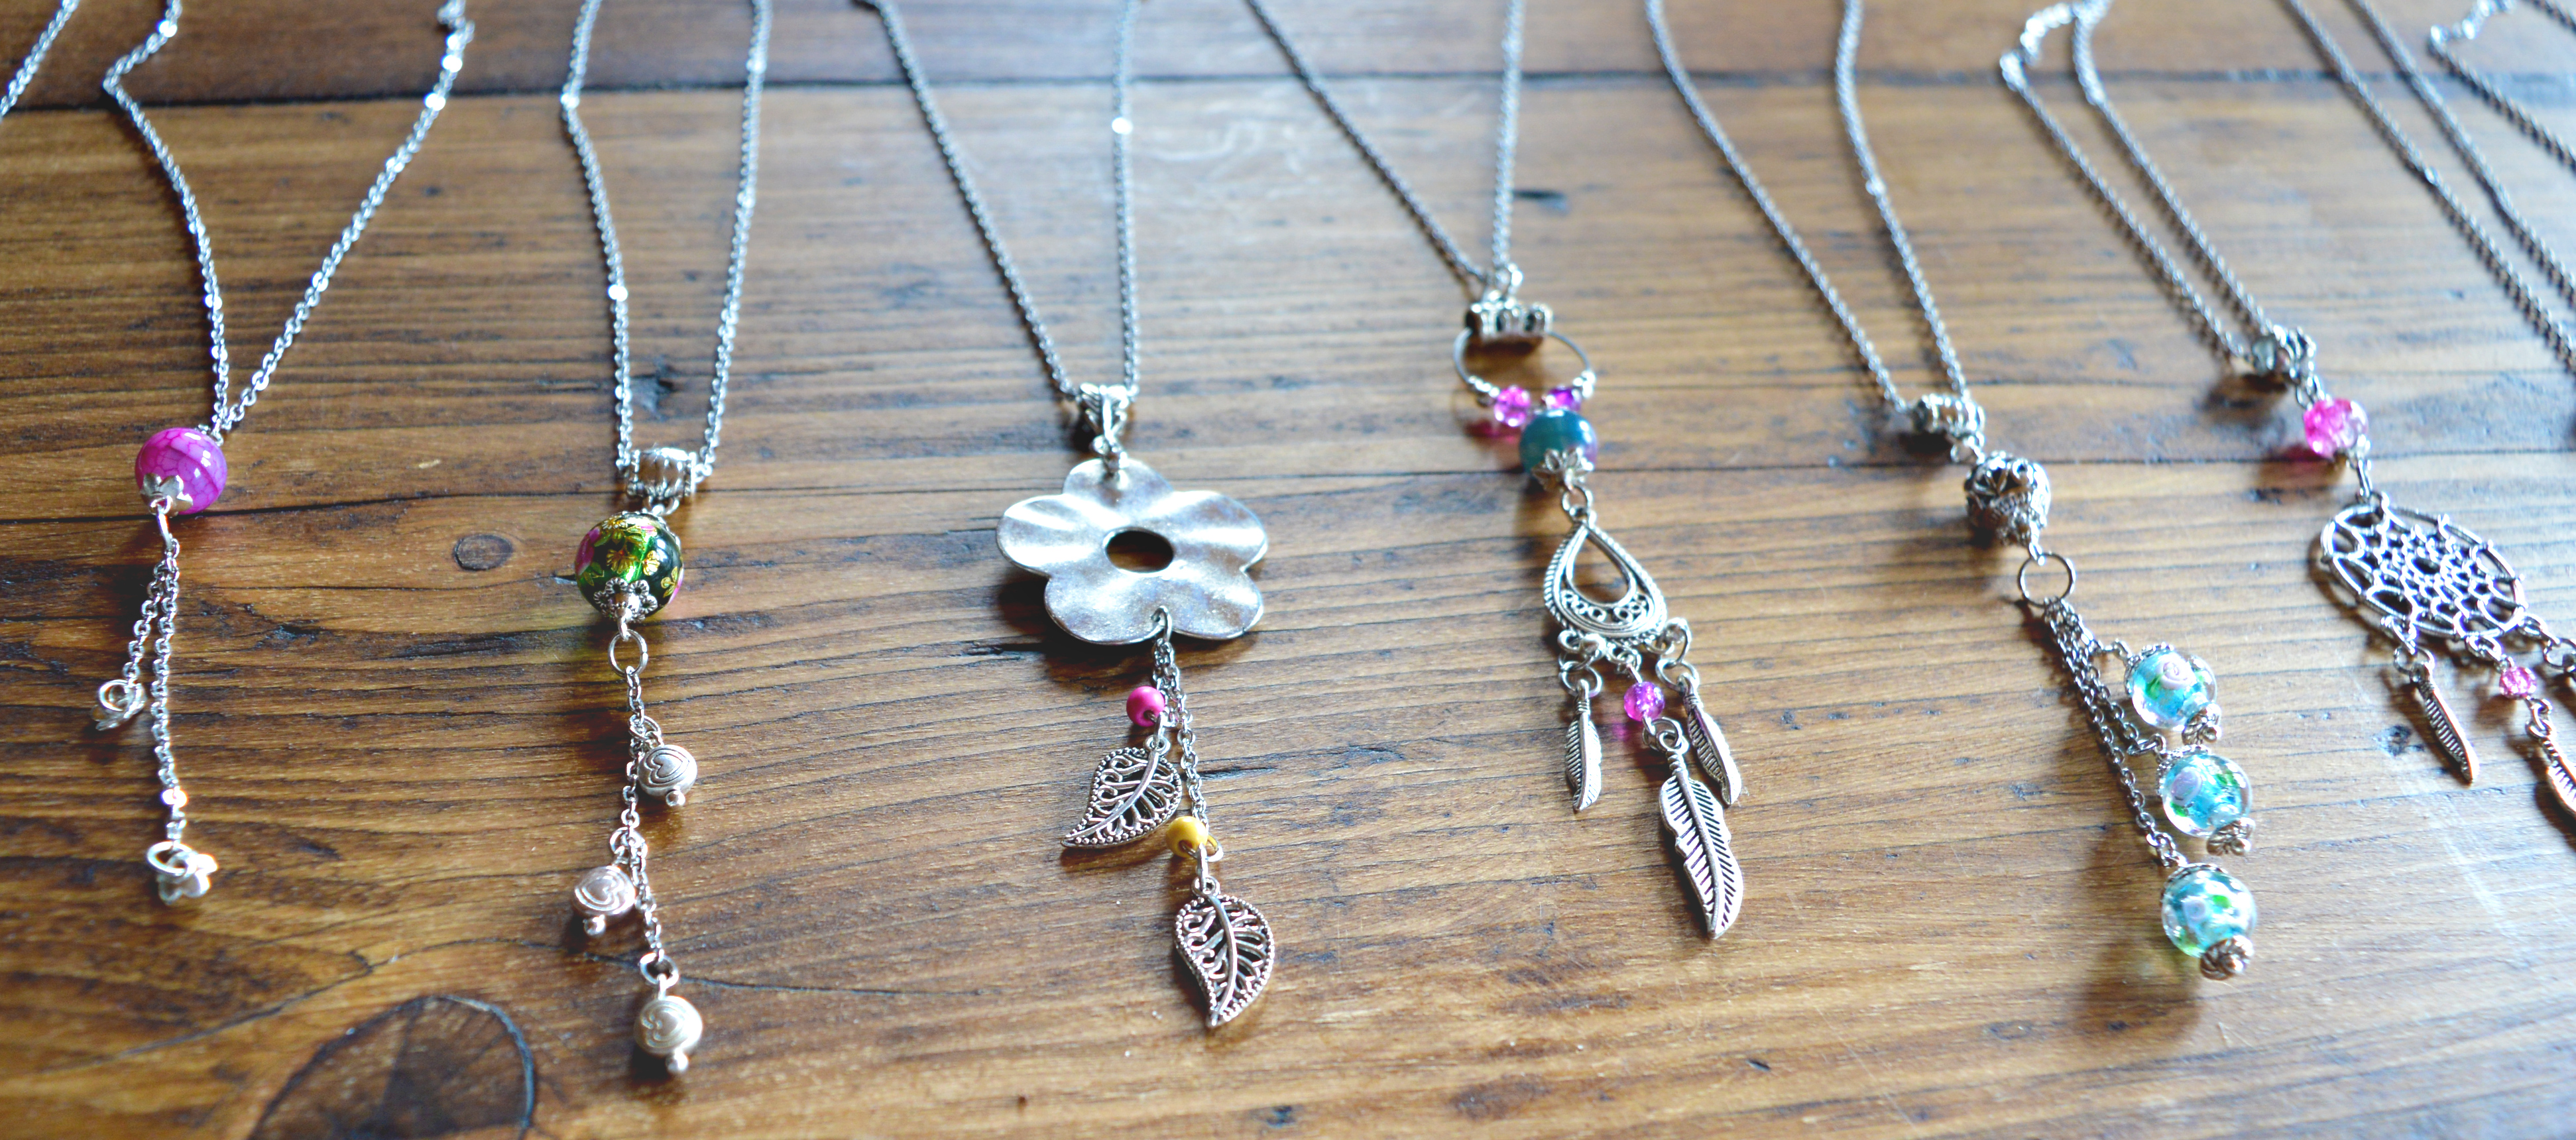 Handmade Bead & Charm Necklaces by Lucy Rawle